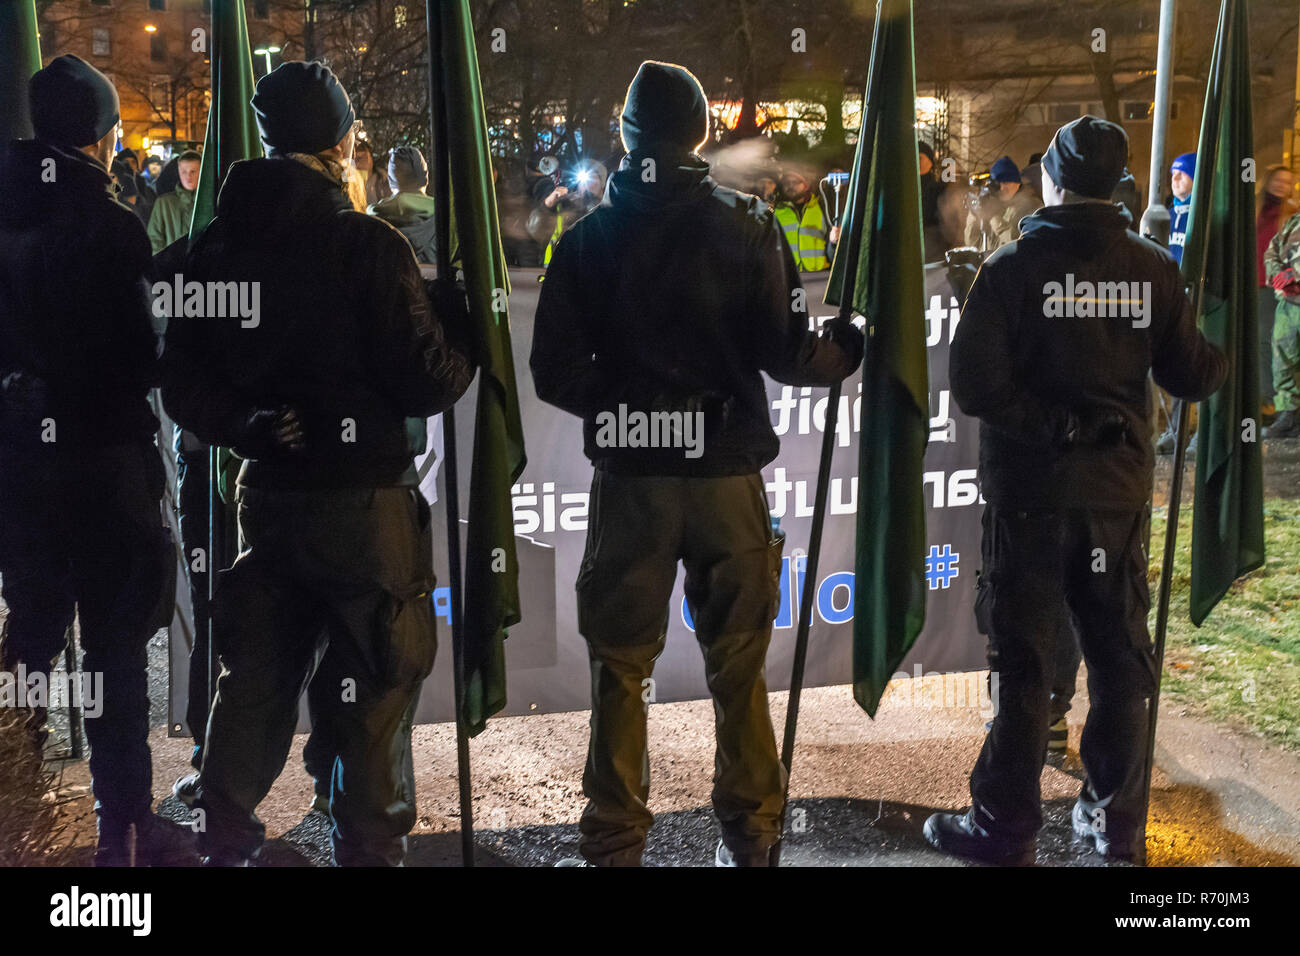 Helsinki, Finland. 6th Dec 2018. Neo Nazi Organistation Nordic Resistance Movement Demonstration in Helsinki on the Independence Day of Finland Credit: Pekka Liukkonen/Alamy Live News Stock Photo